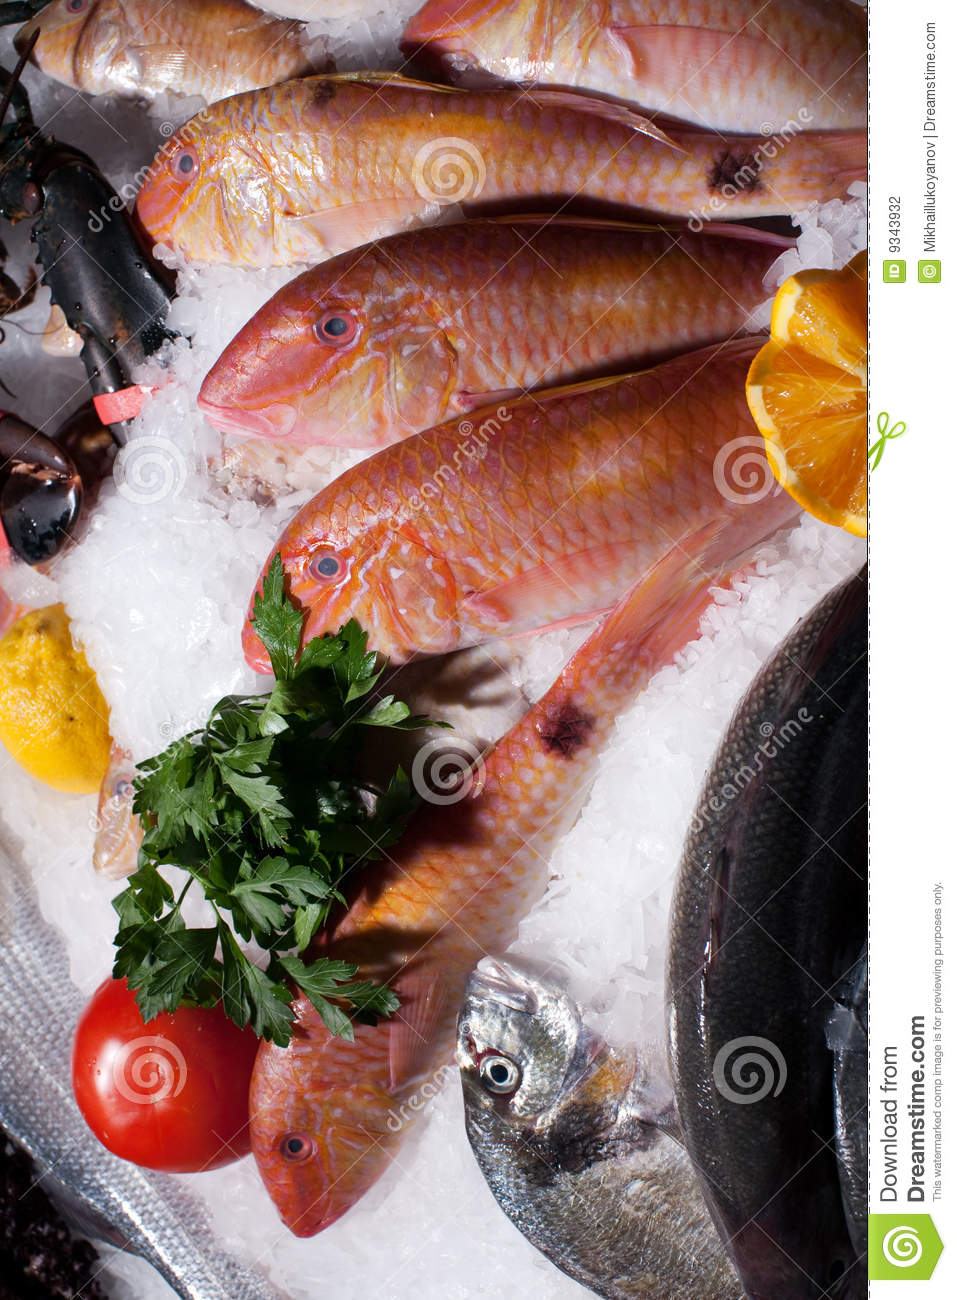 Frozen fish stock photography image 9343932 for Best frozen fish